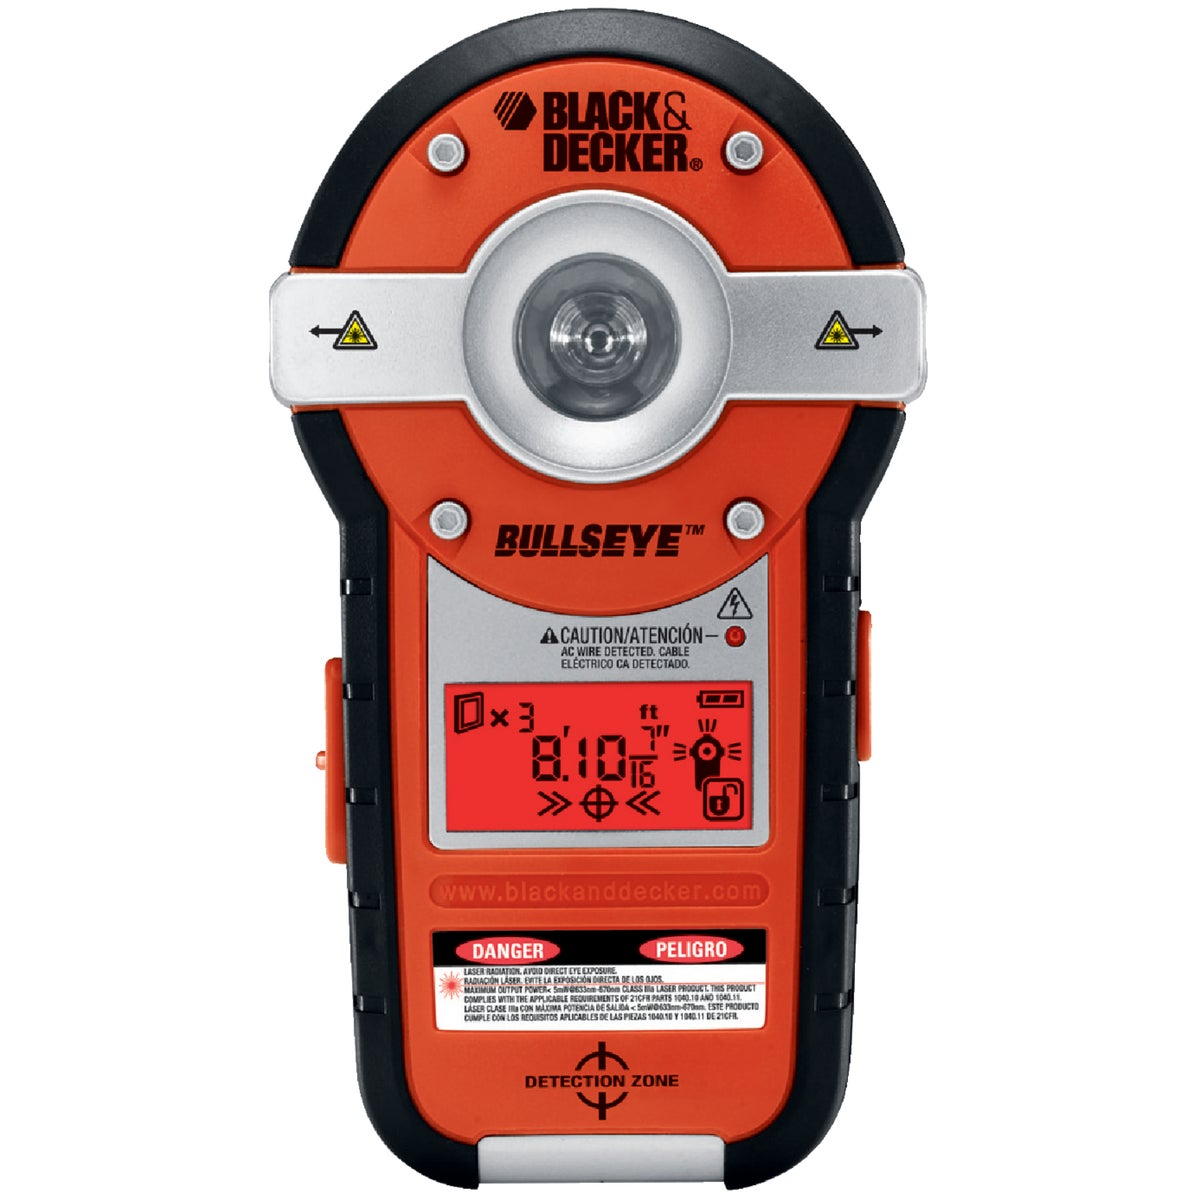 BULLSEYE LASER LEVEL - BDL190S by Black & Decker